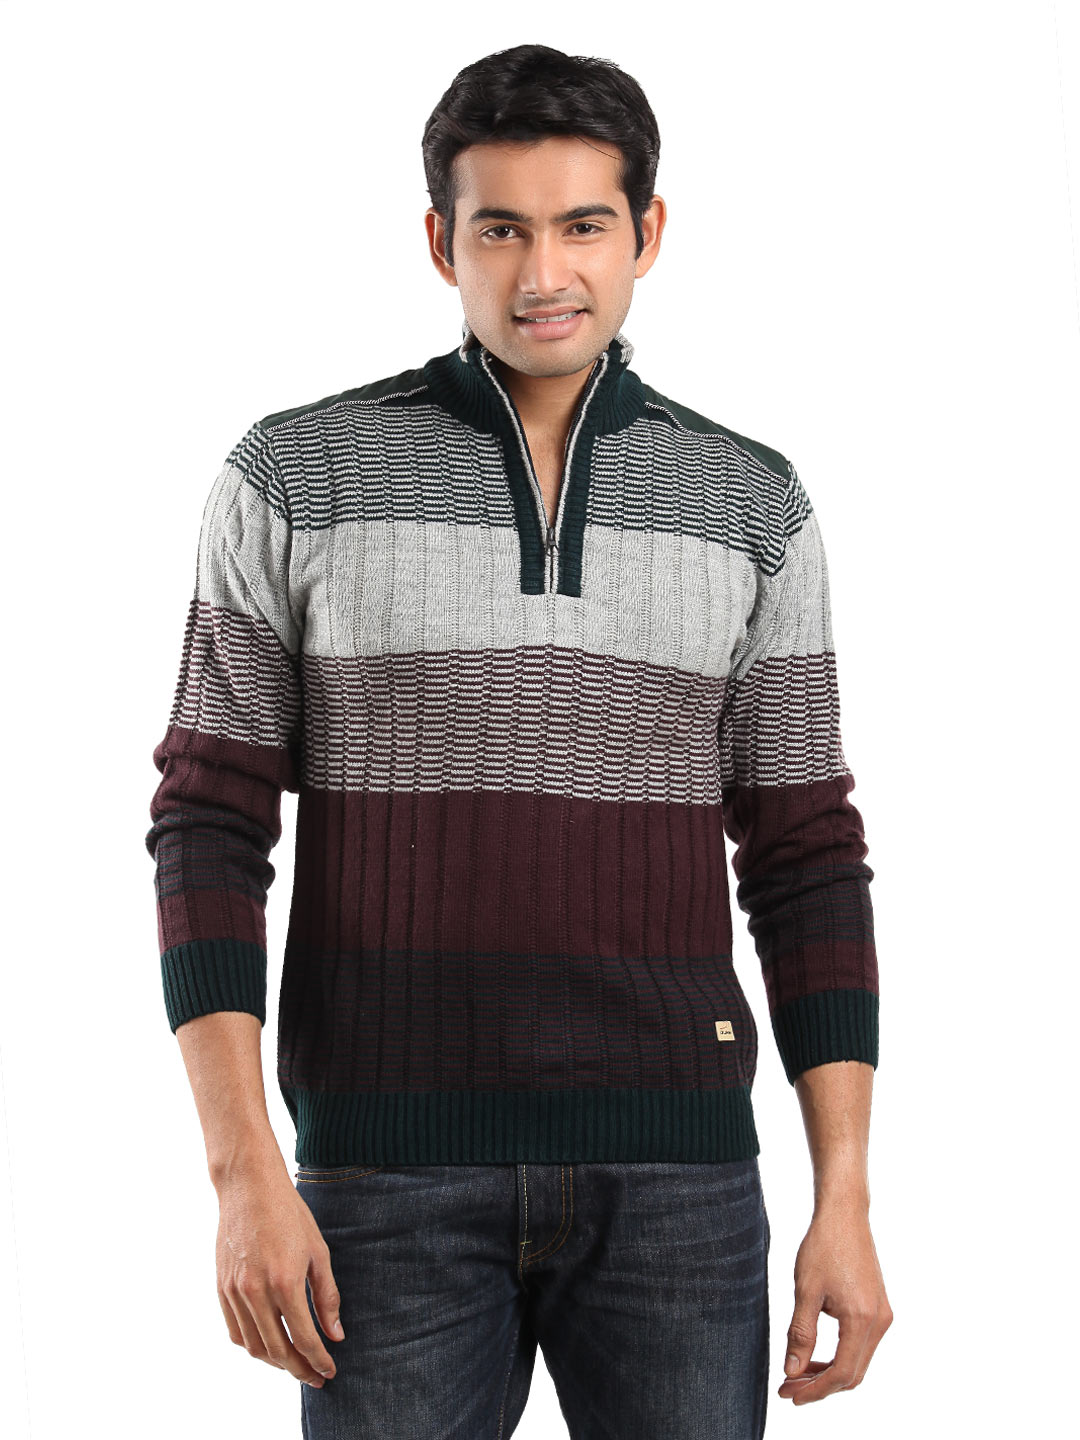 Opinion, blue and burgundy striped mens sweaters remarkable, very